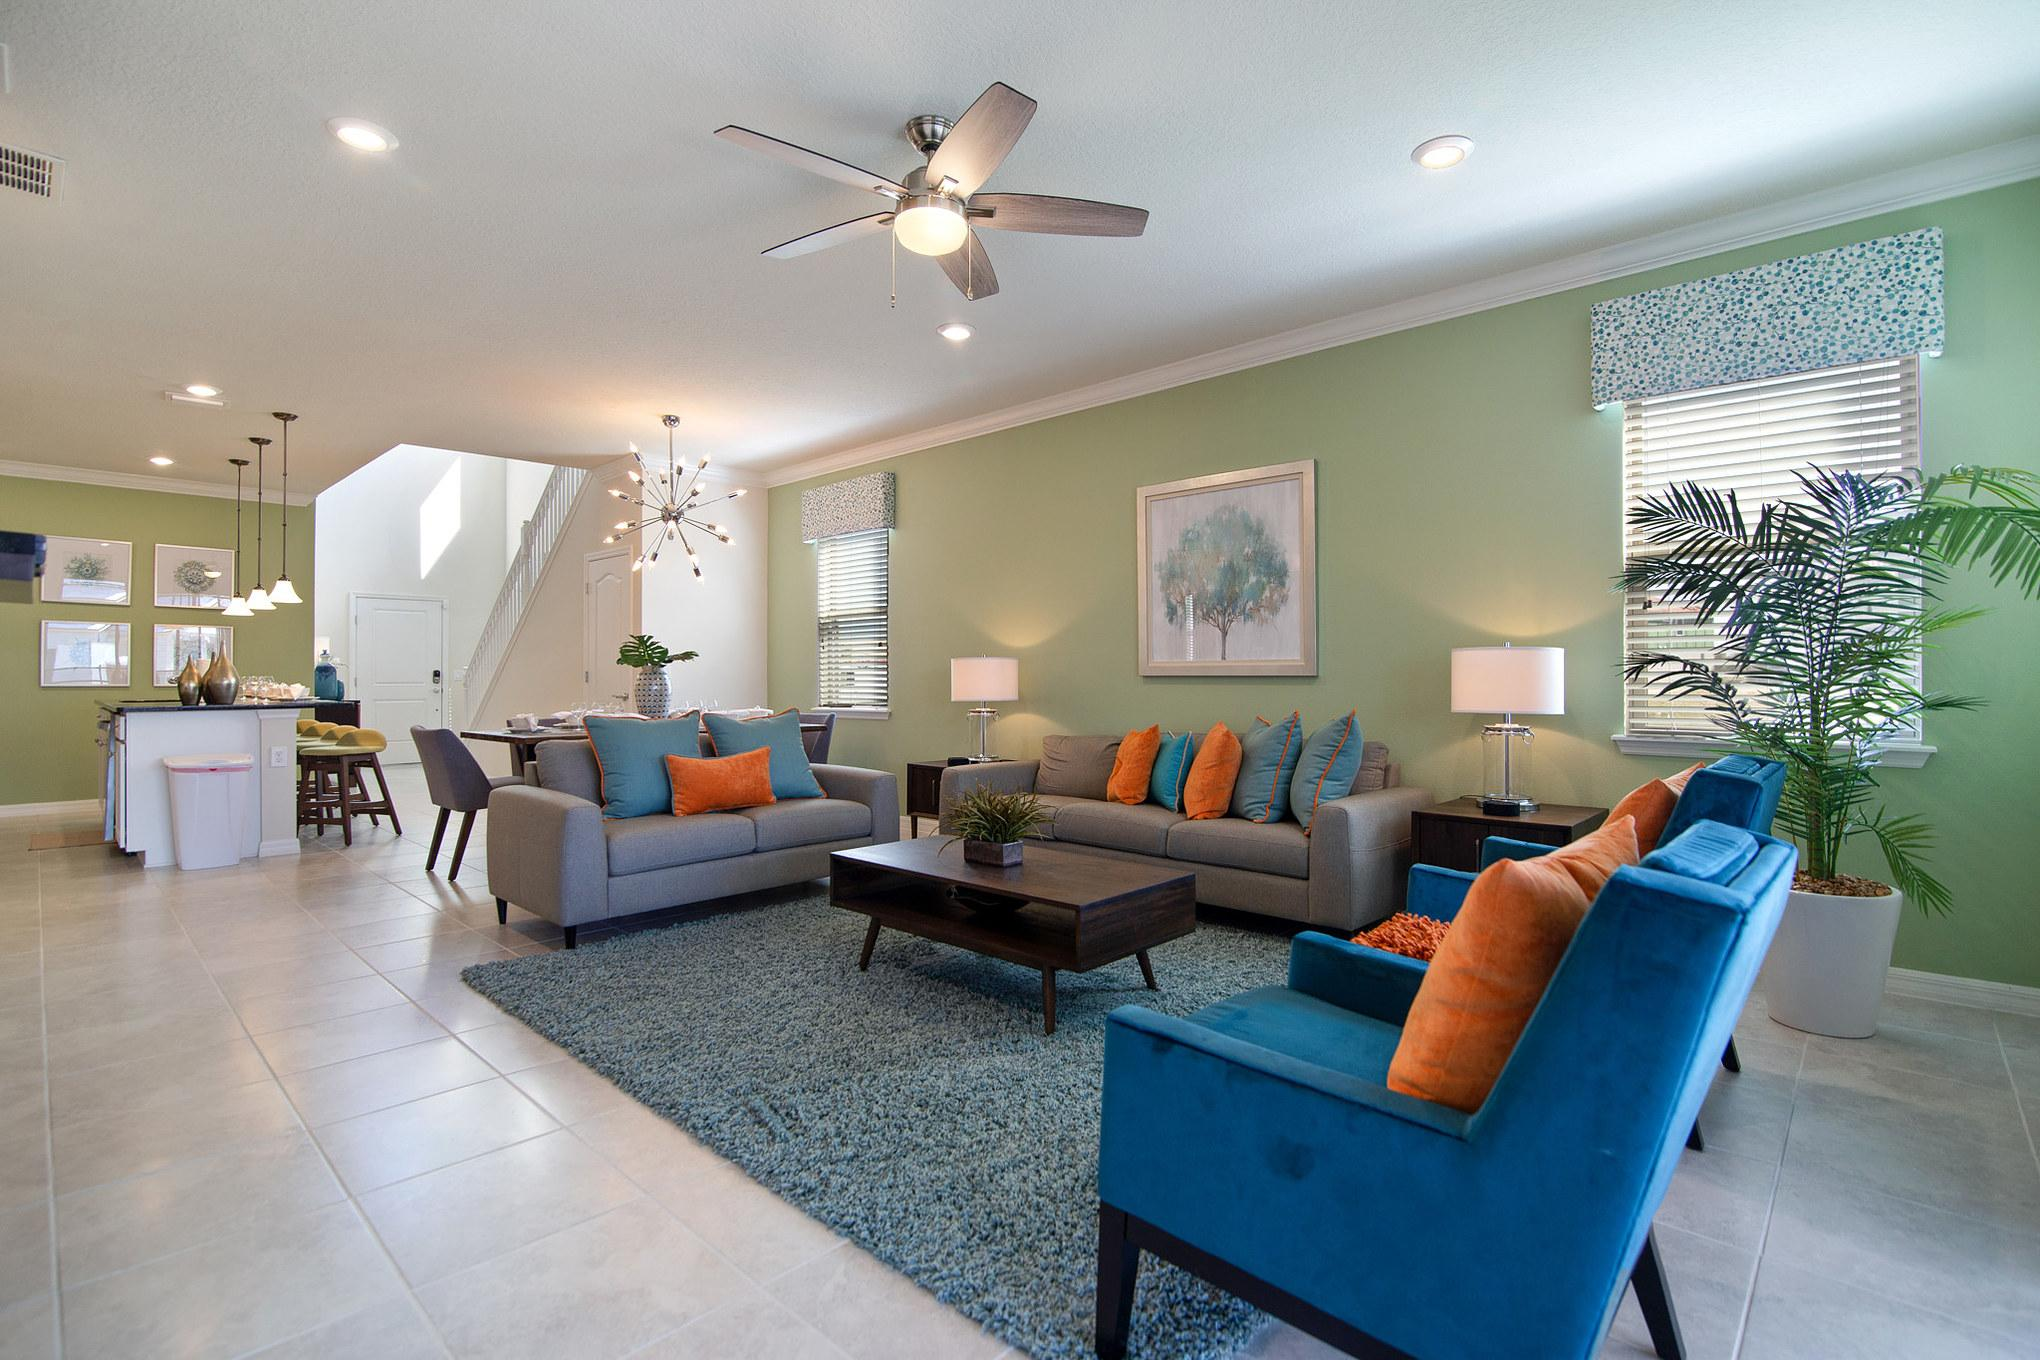 Property Image 2 - Richly-Colored Vacation Home near Disney